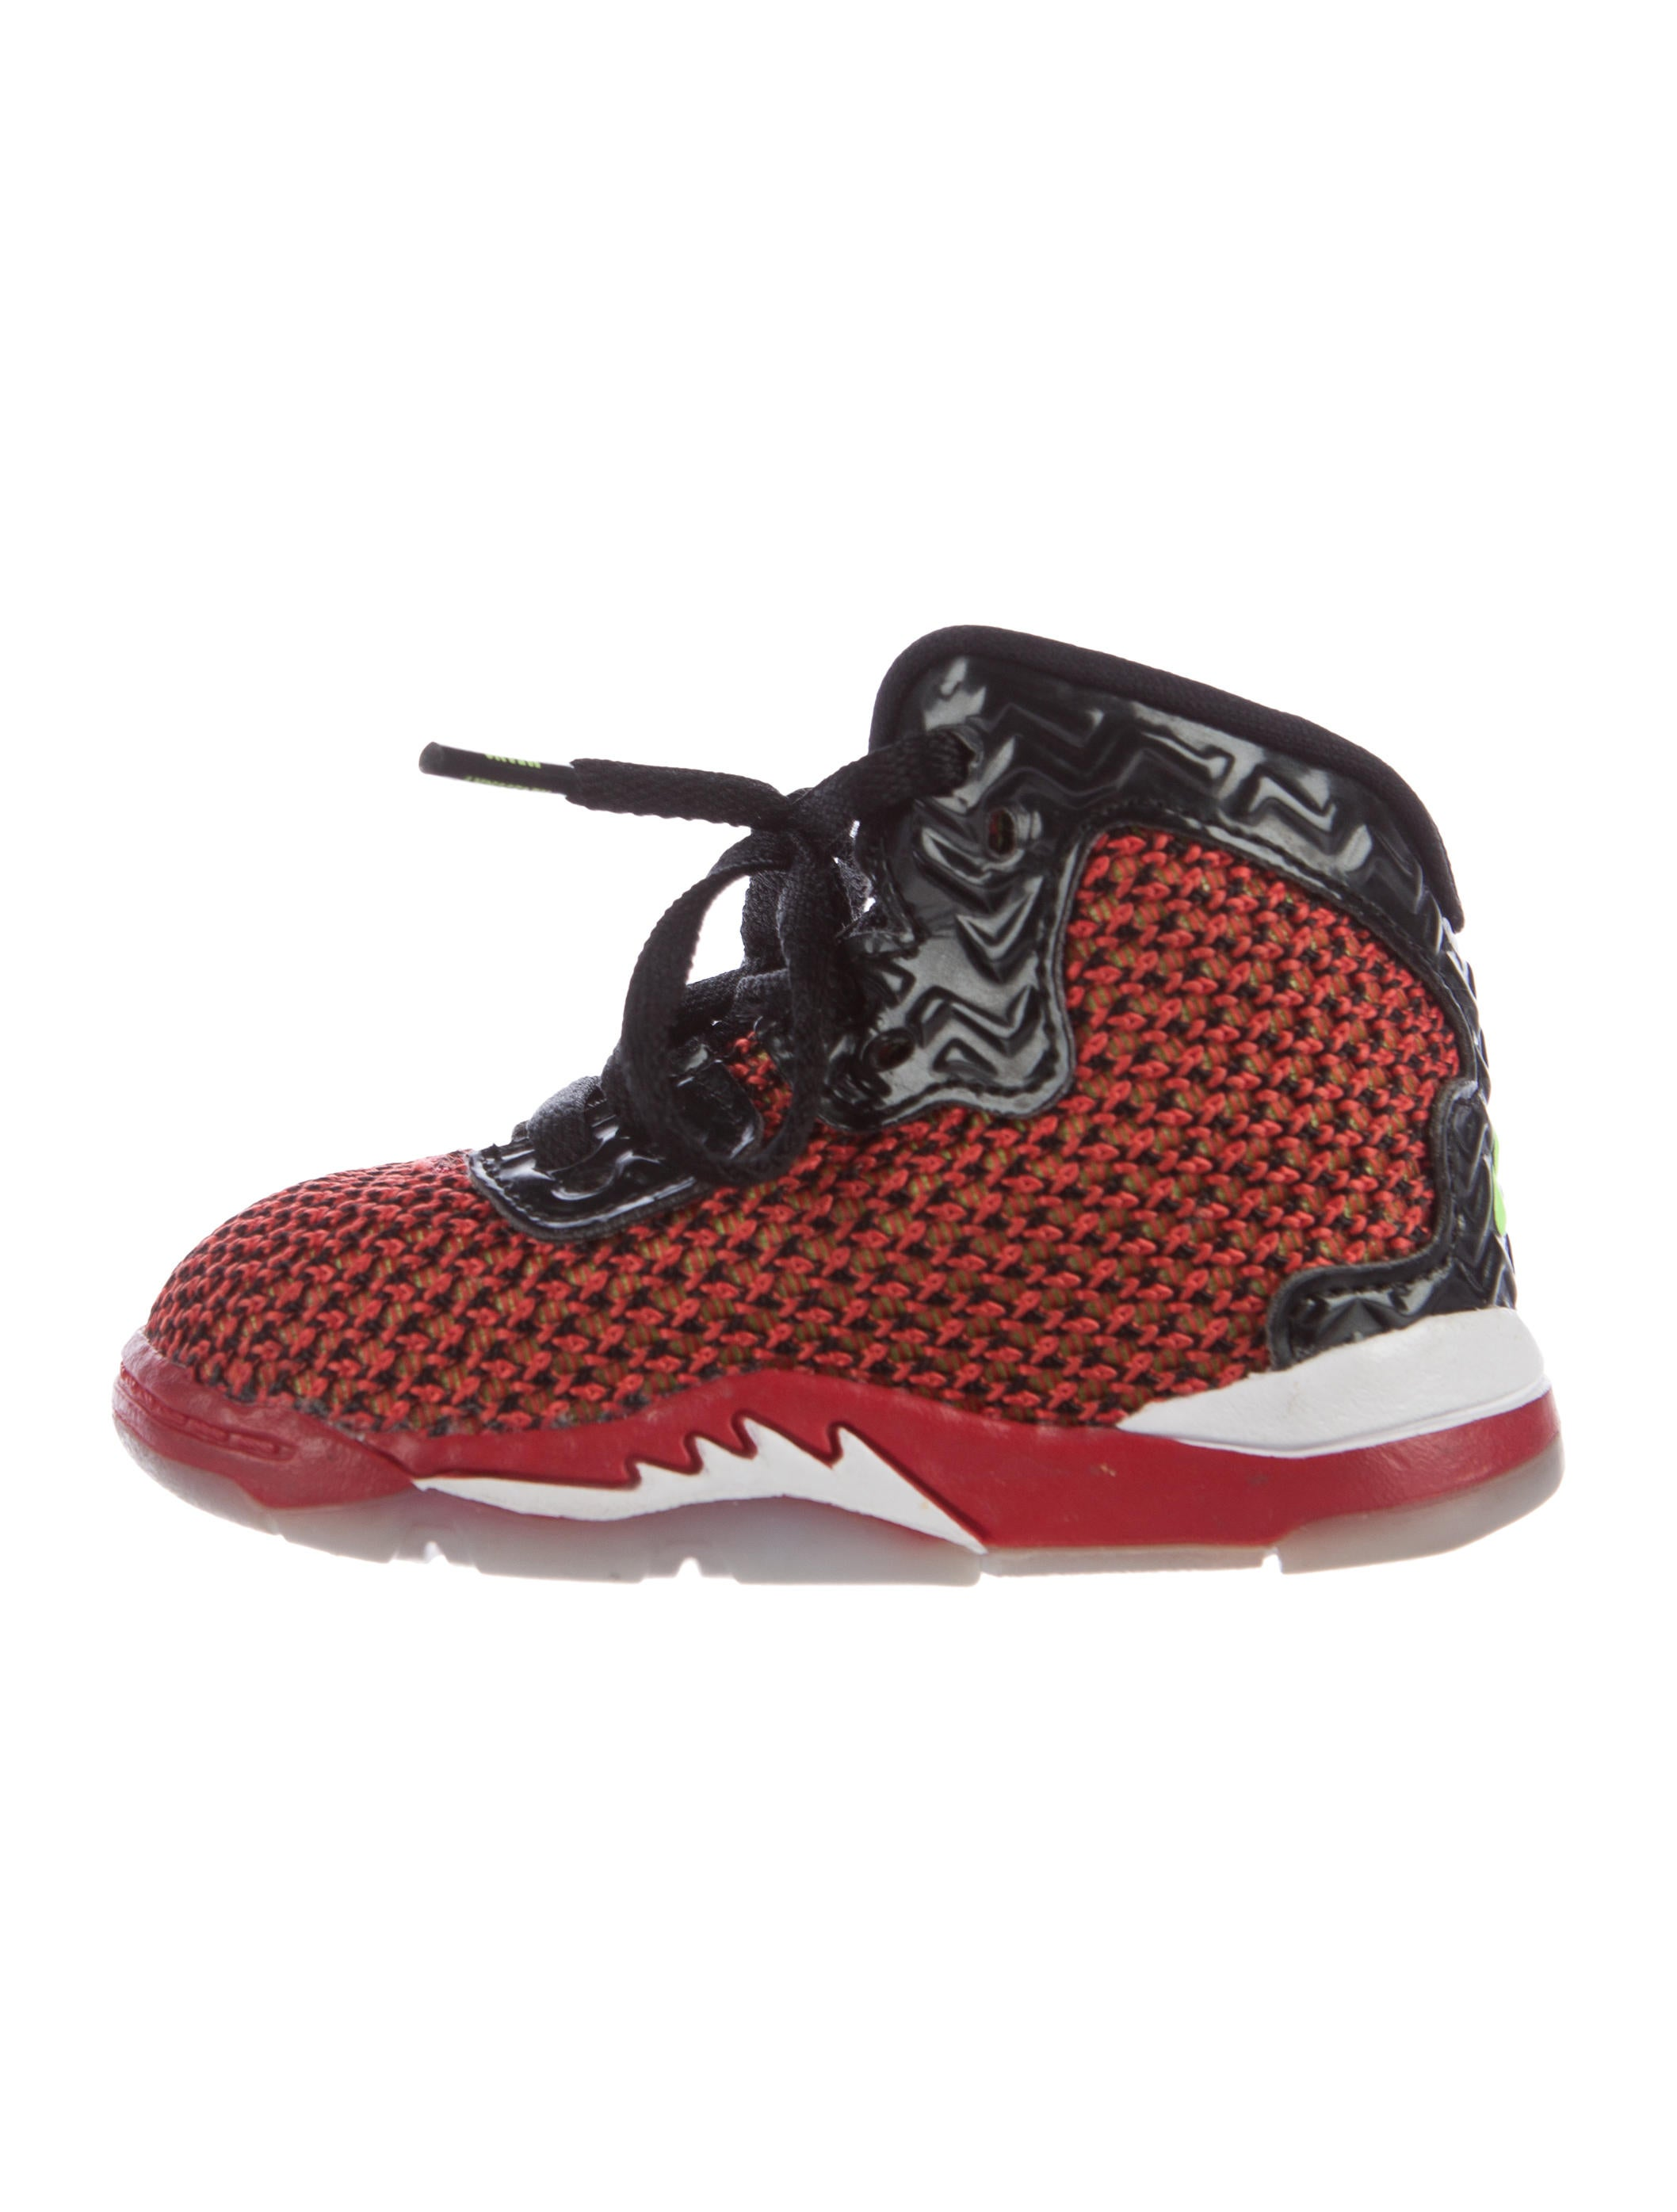 on sale fb78a 5267d Boys  Woven High-Top Sneakers